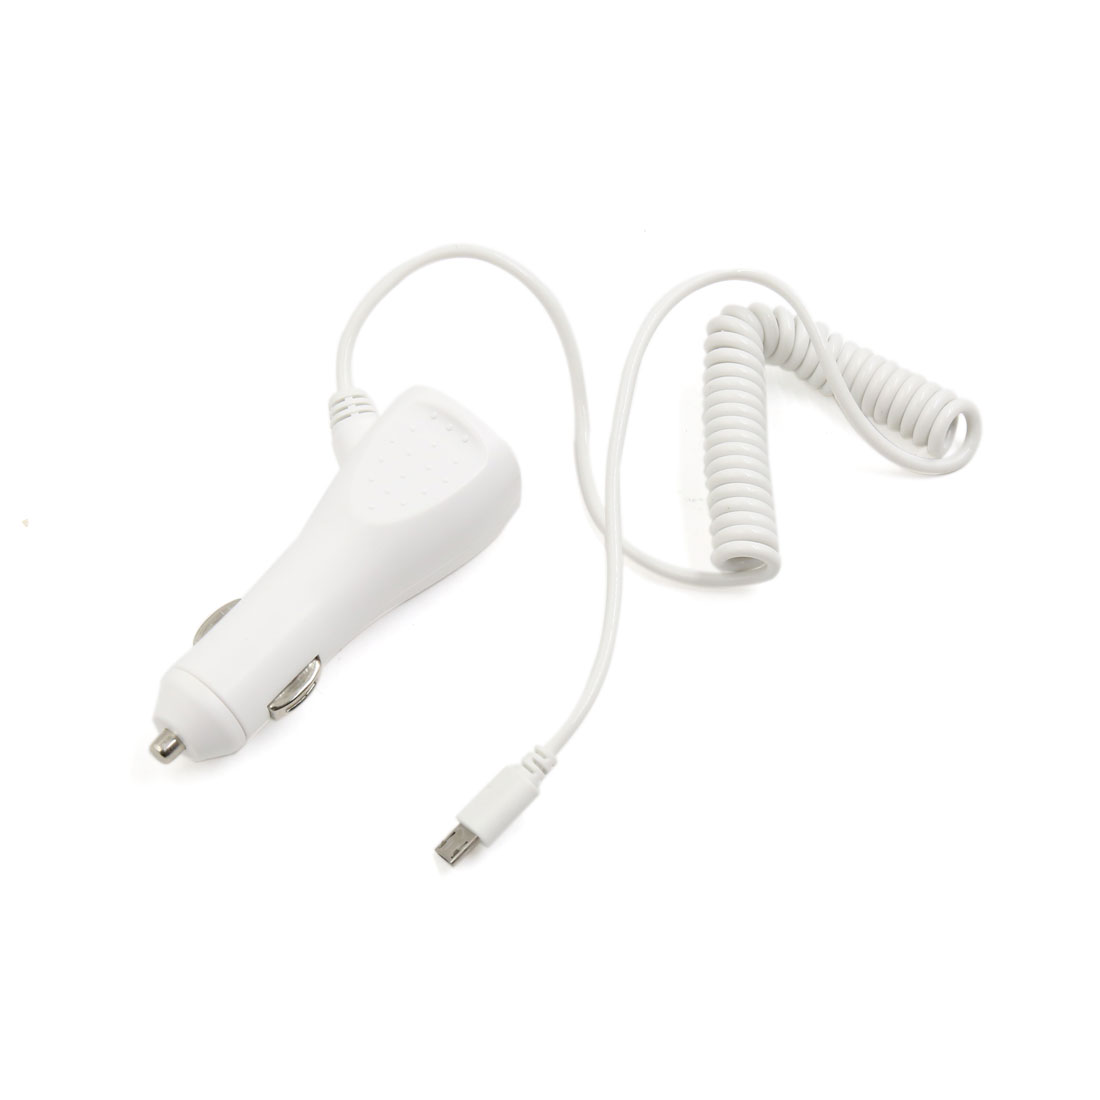 Waterproof Car Vehicle USB Charger Adapter 5V 2A for Iphone4/Iphone5/Mirco